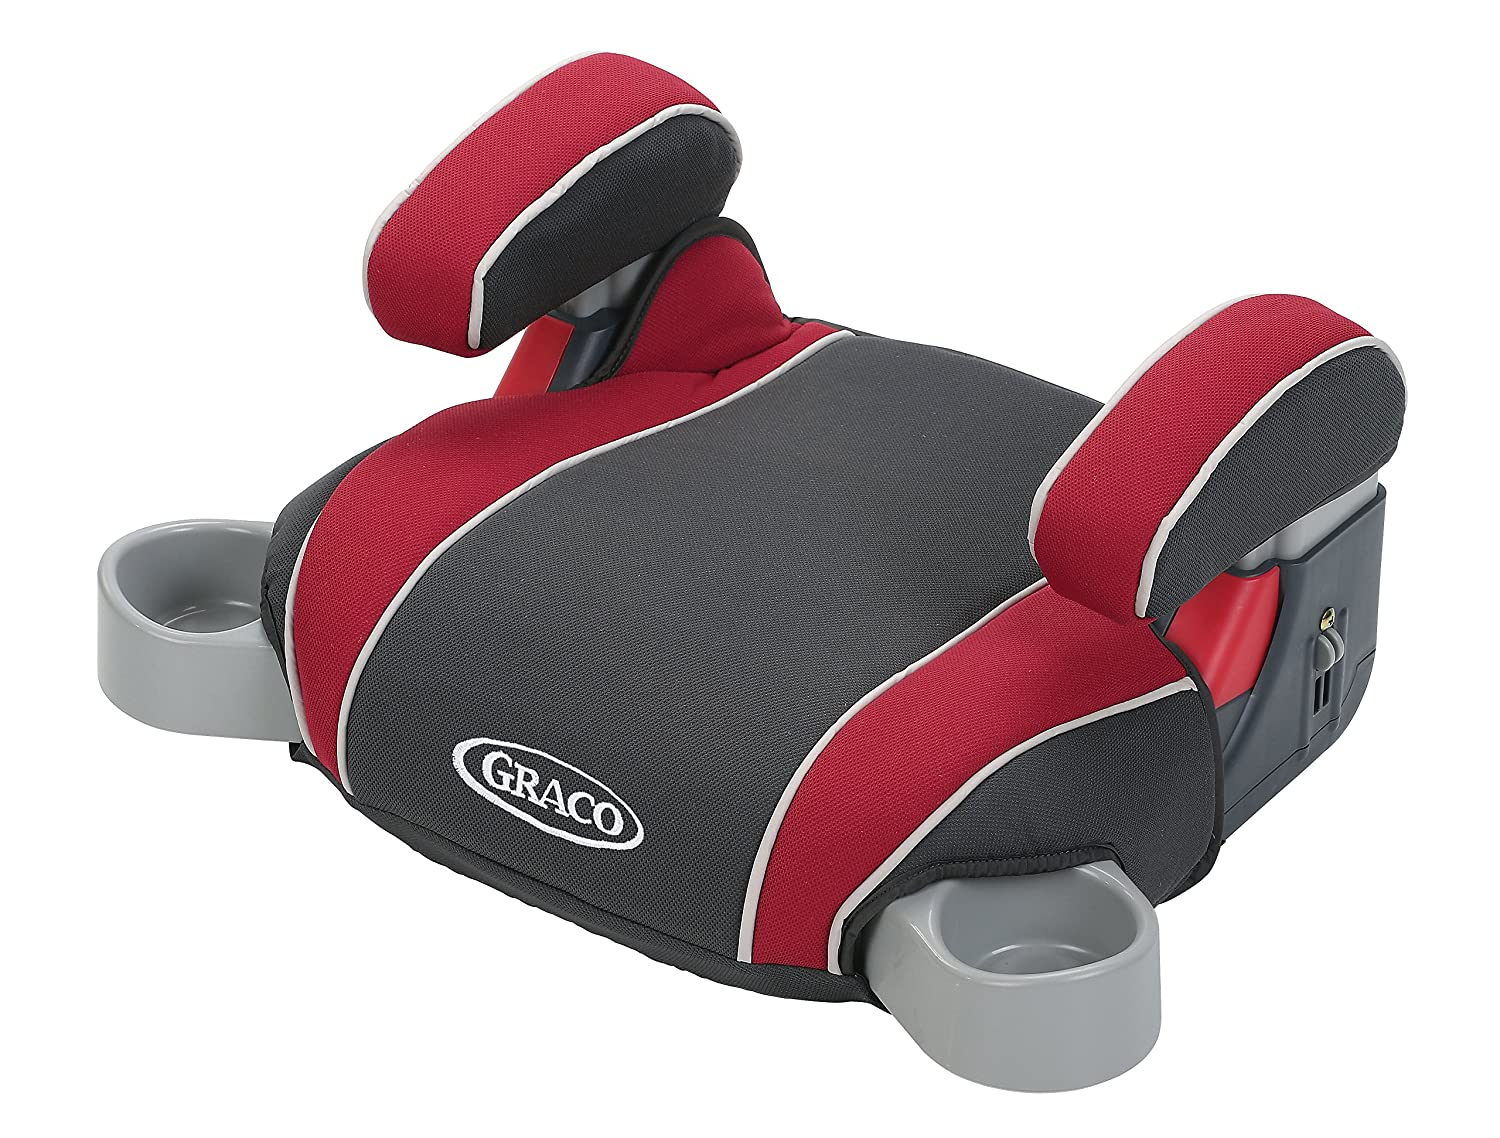 Amazon Graco Backless Turbo Booster Car Seat Chili Red One Size Baby